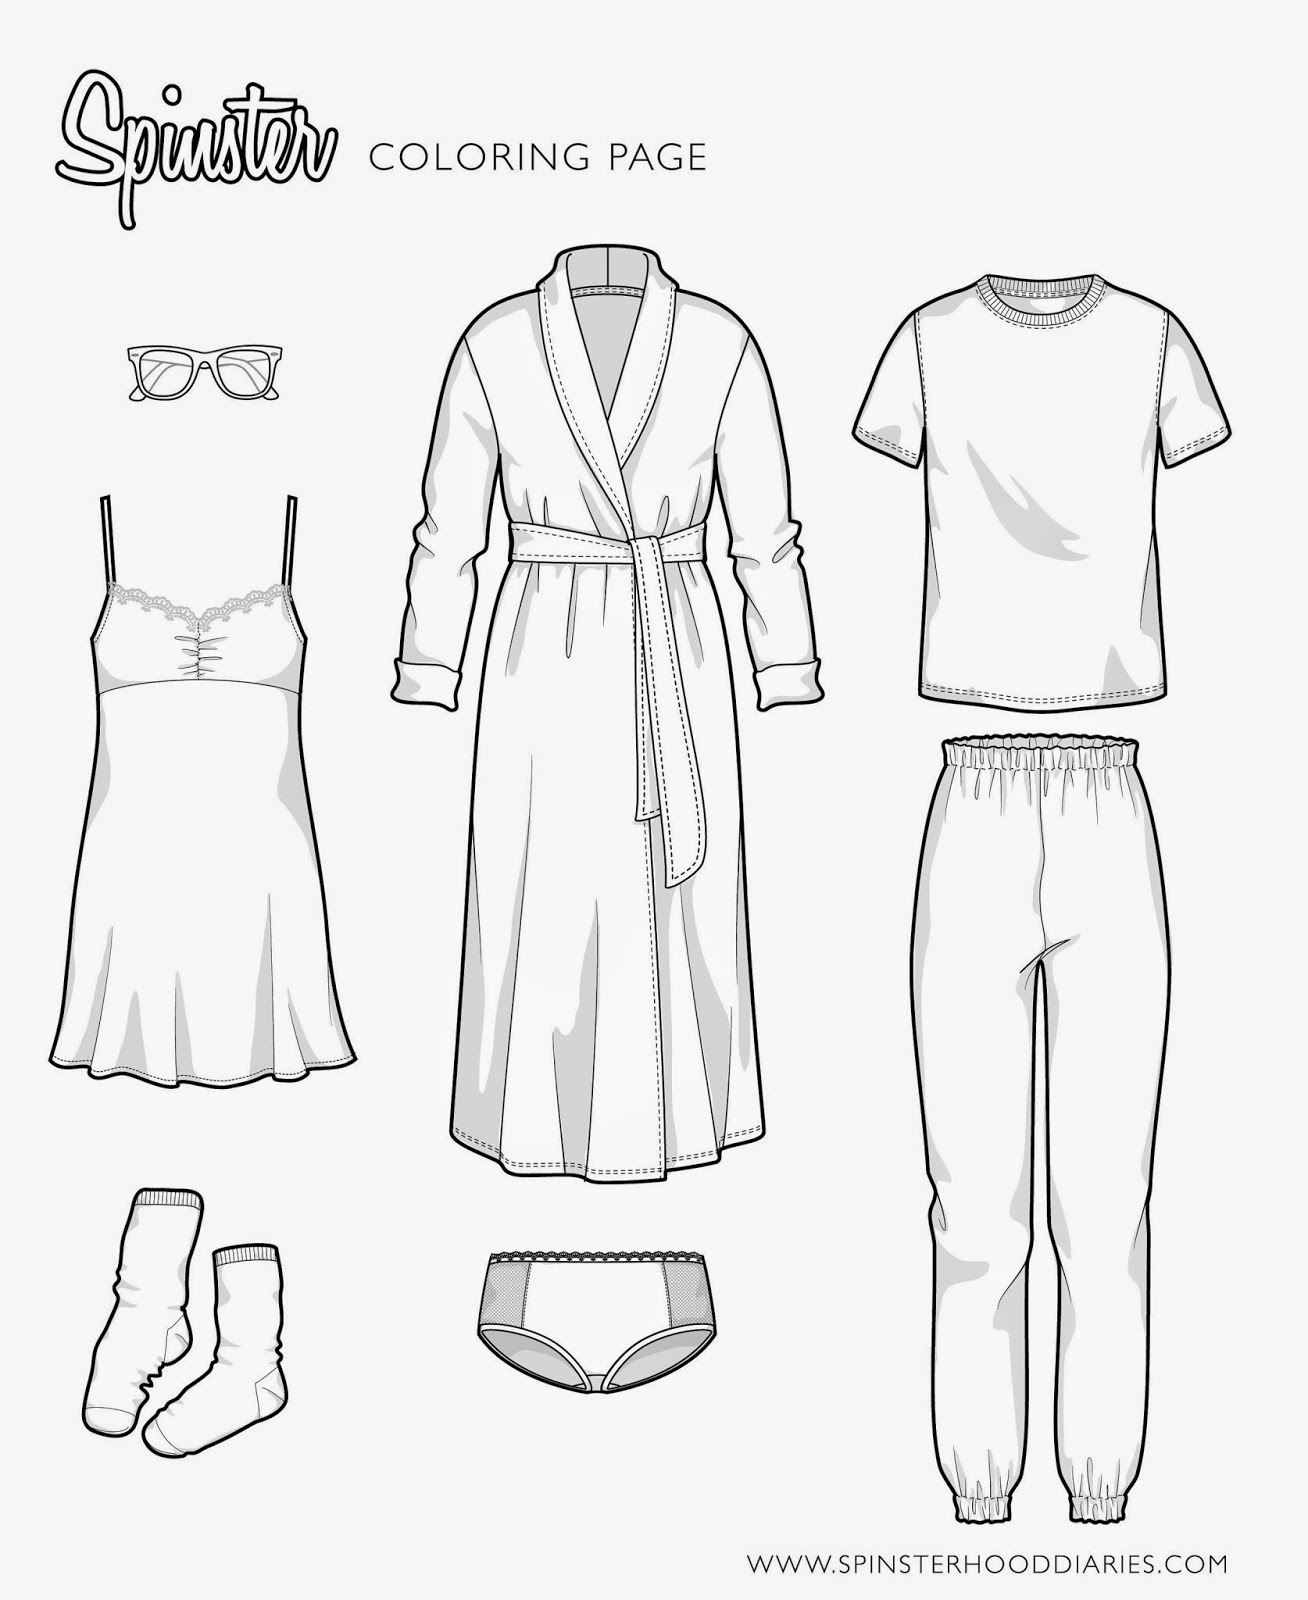 loungewear-flat-sketches, spinster-fashion, sweatpants-flat-sketch